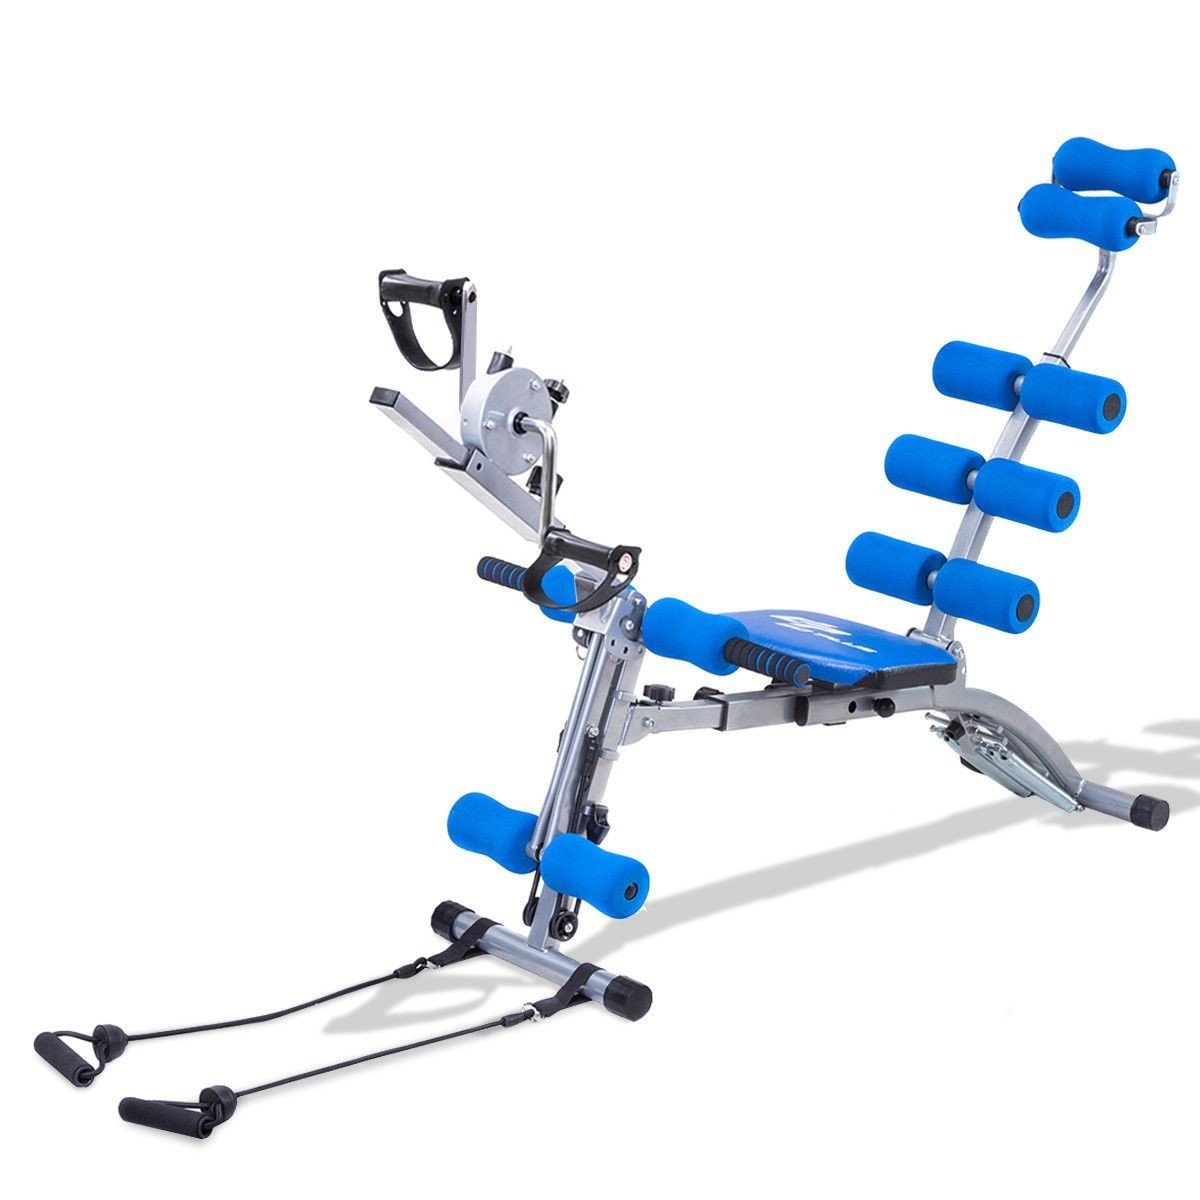 Multi-functional Twister AB Rocket Abdominal Trainer Bench Stepper - Blue